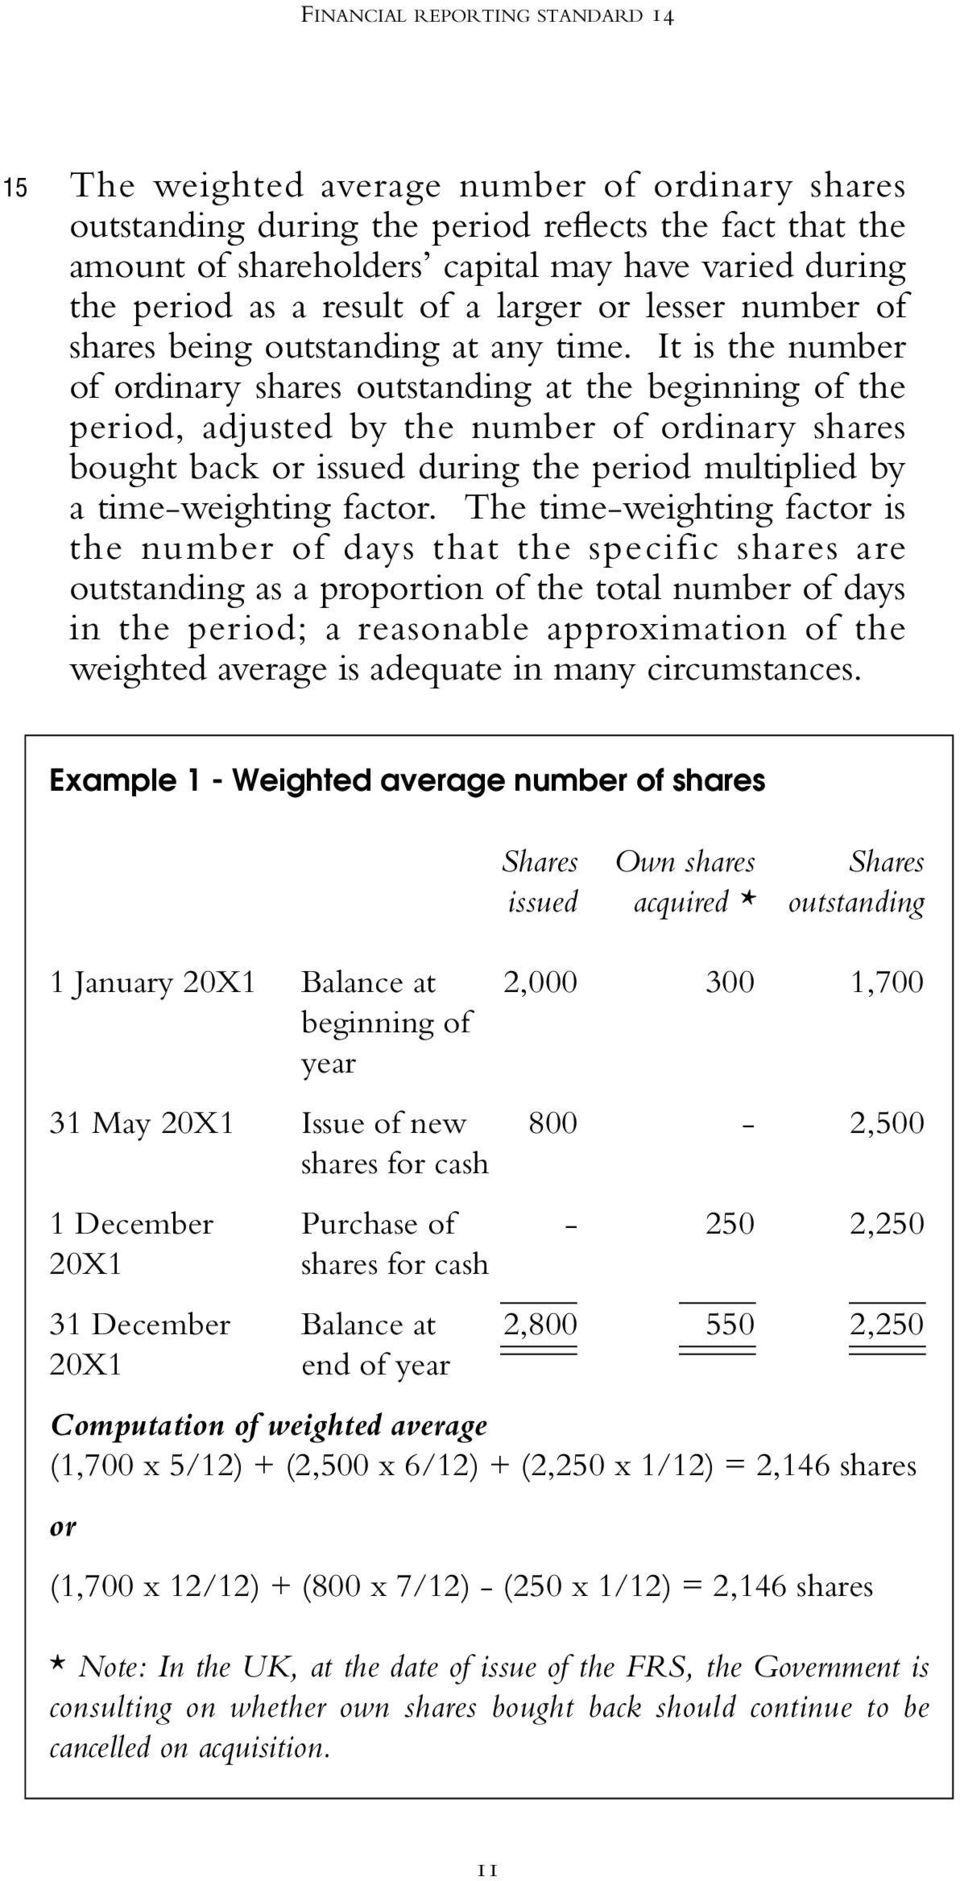 It is the number of ordinary shares outstanding at the beginning of the period, adjusted by the number of ordinary shares bought back or issued during the period multiplied by a time-weighting factor.